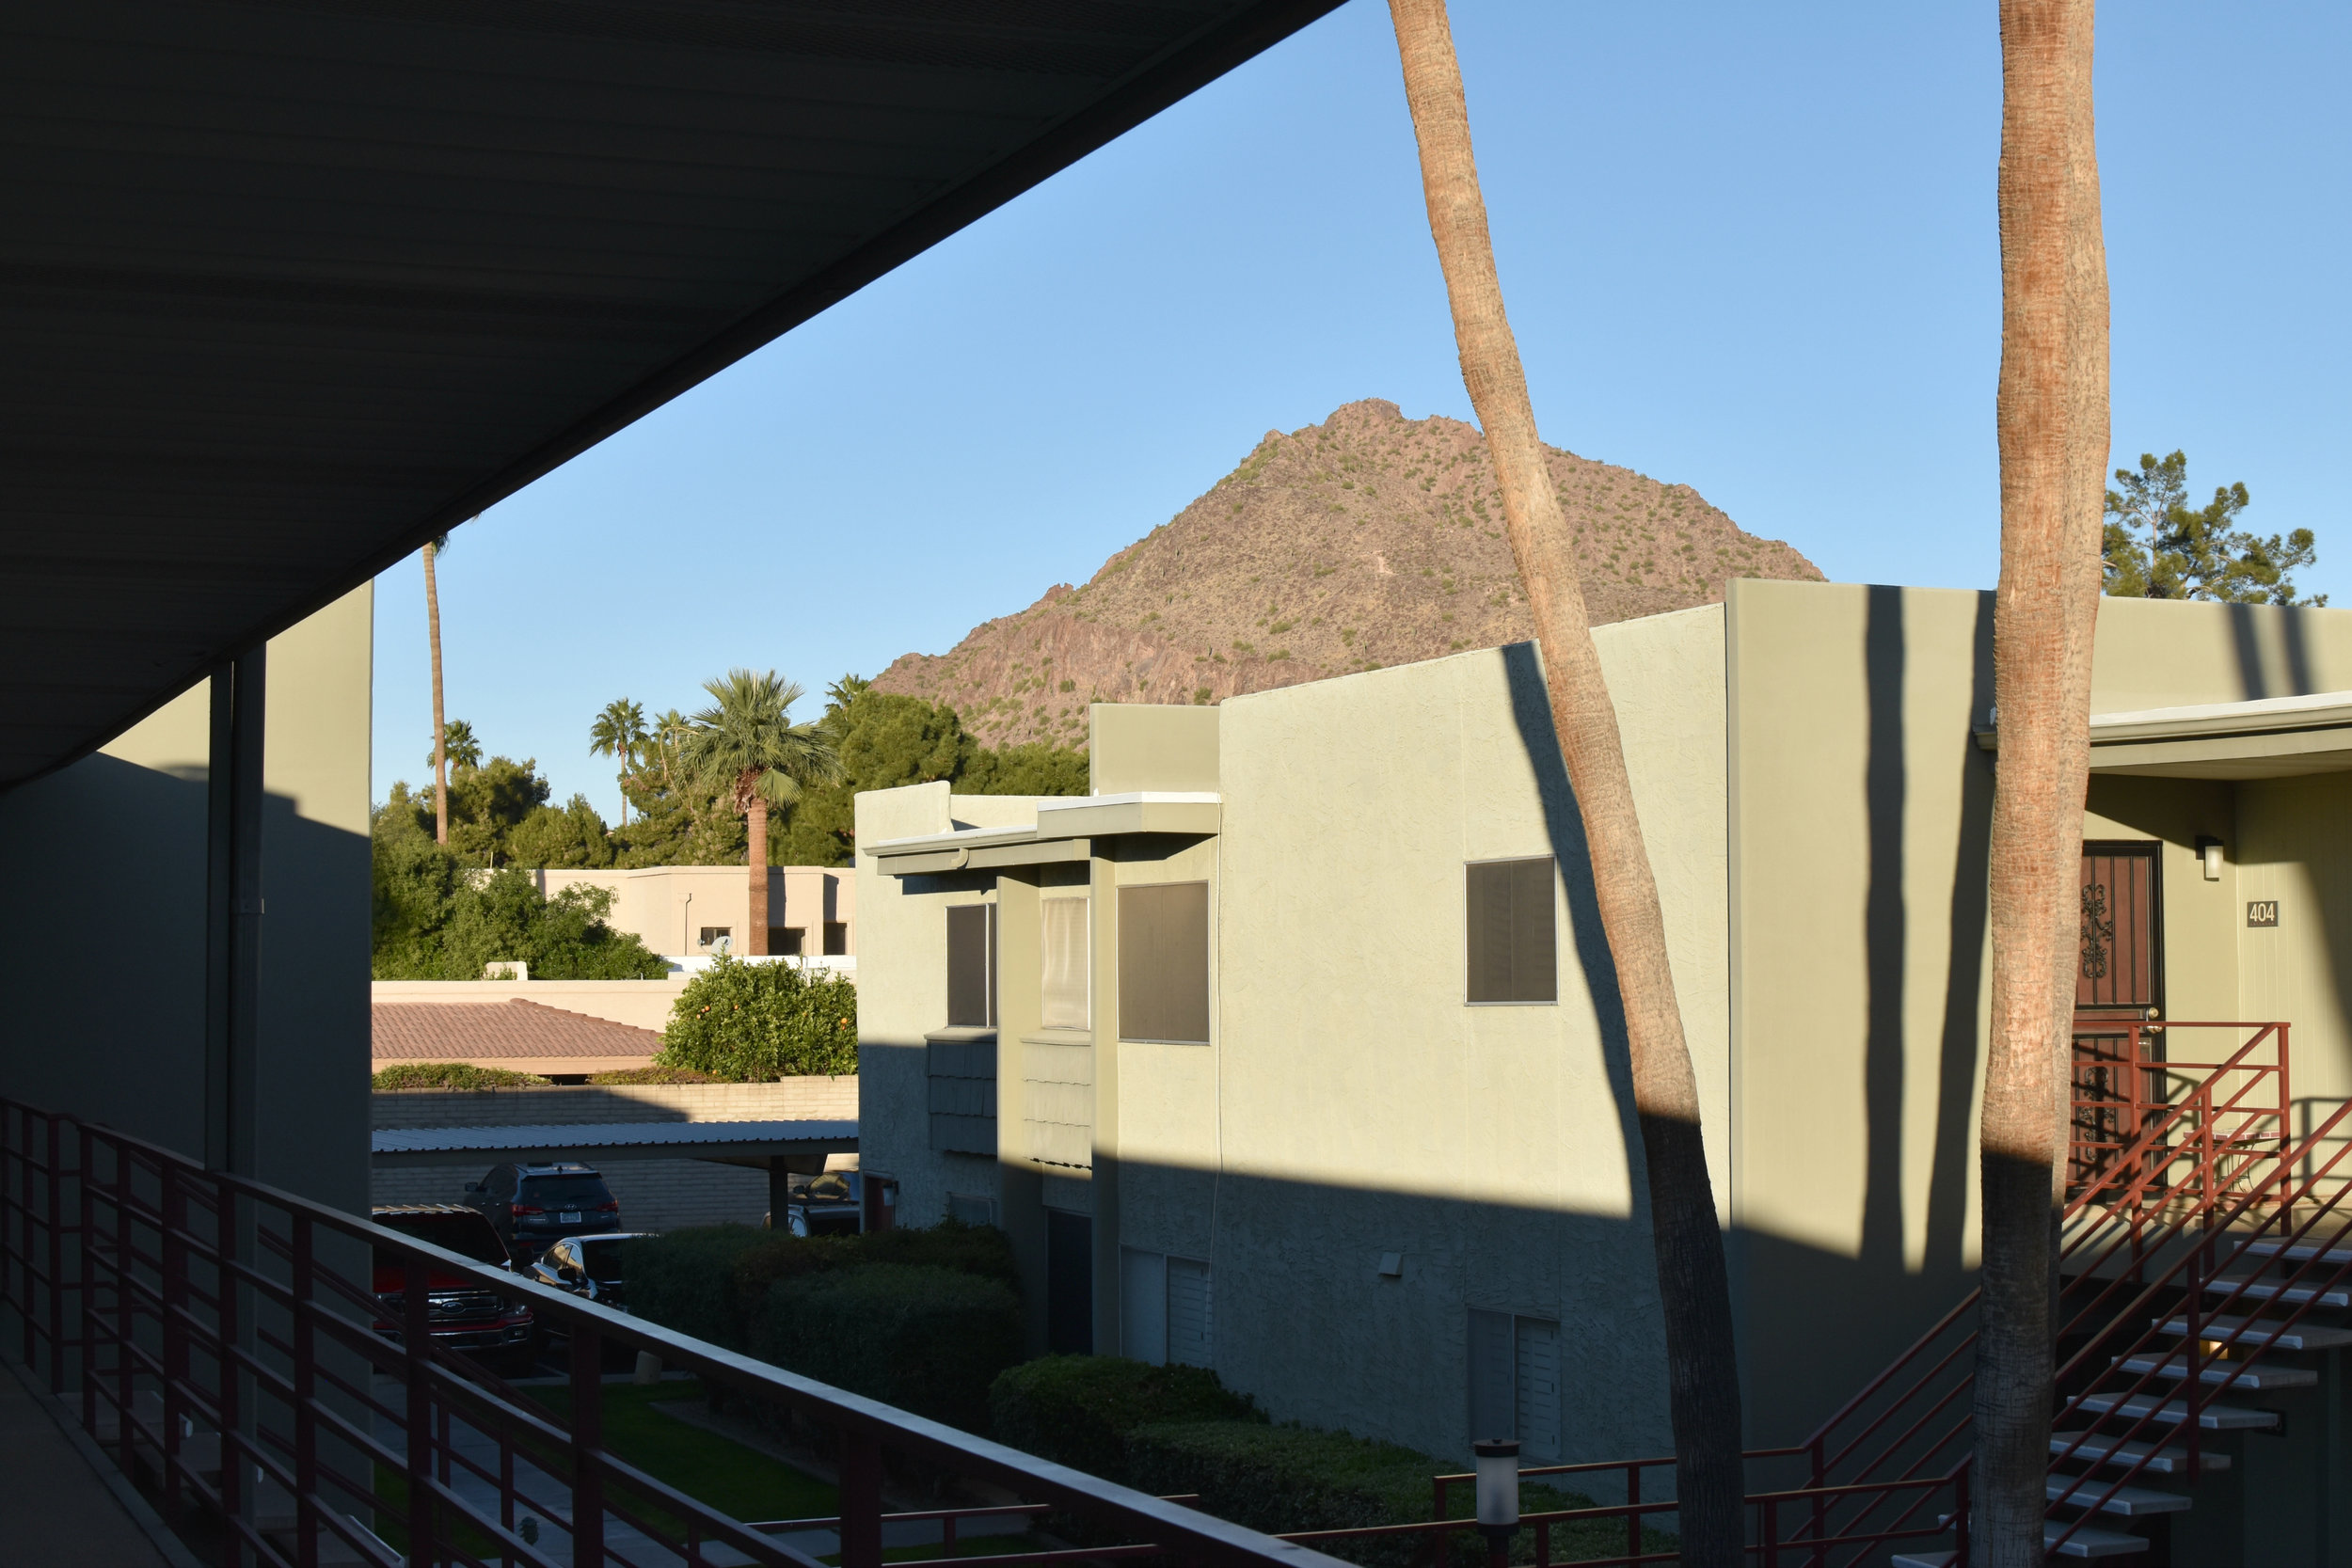 The view of Camelback from our door